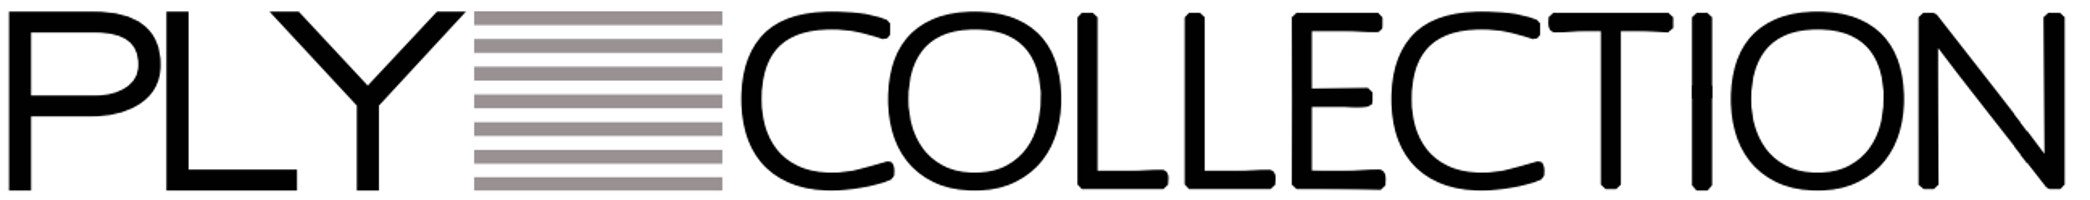 PlyCollection logo